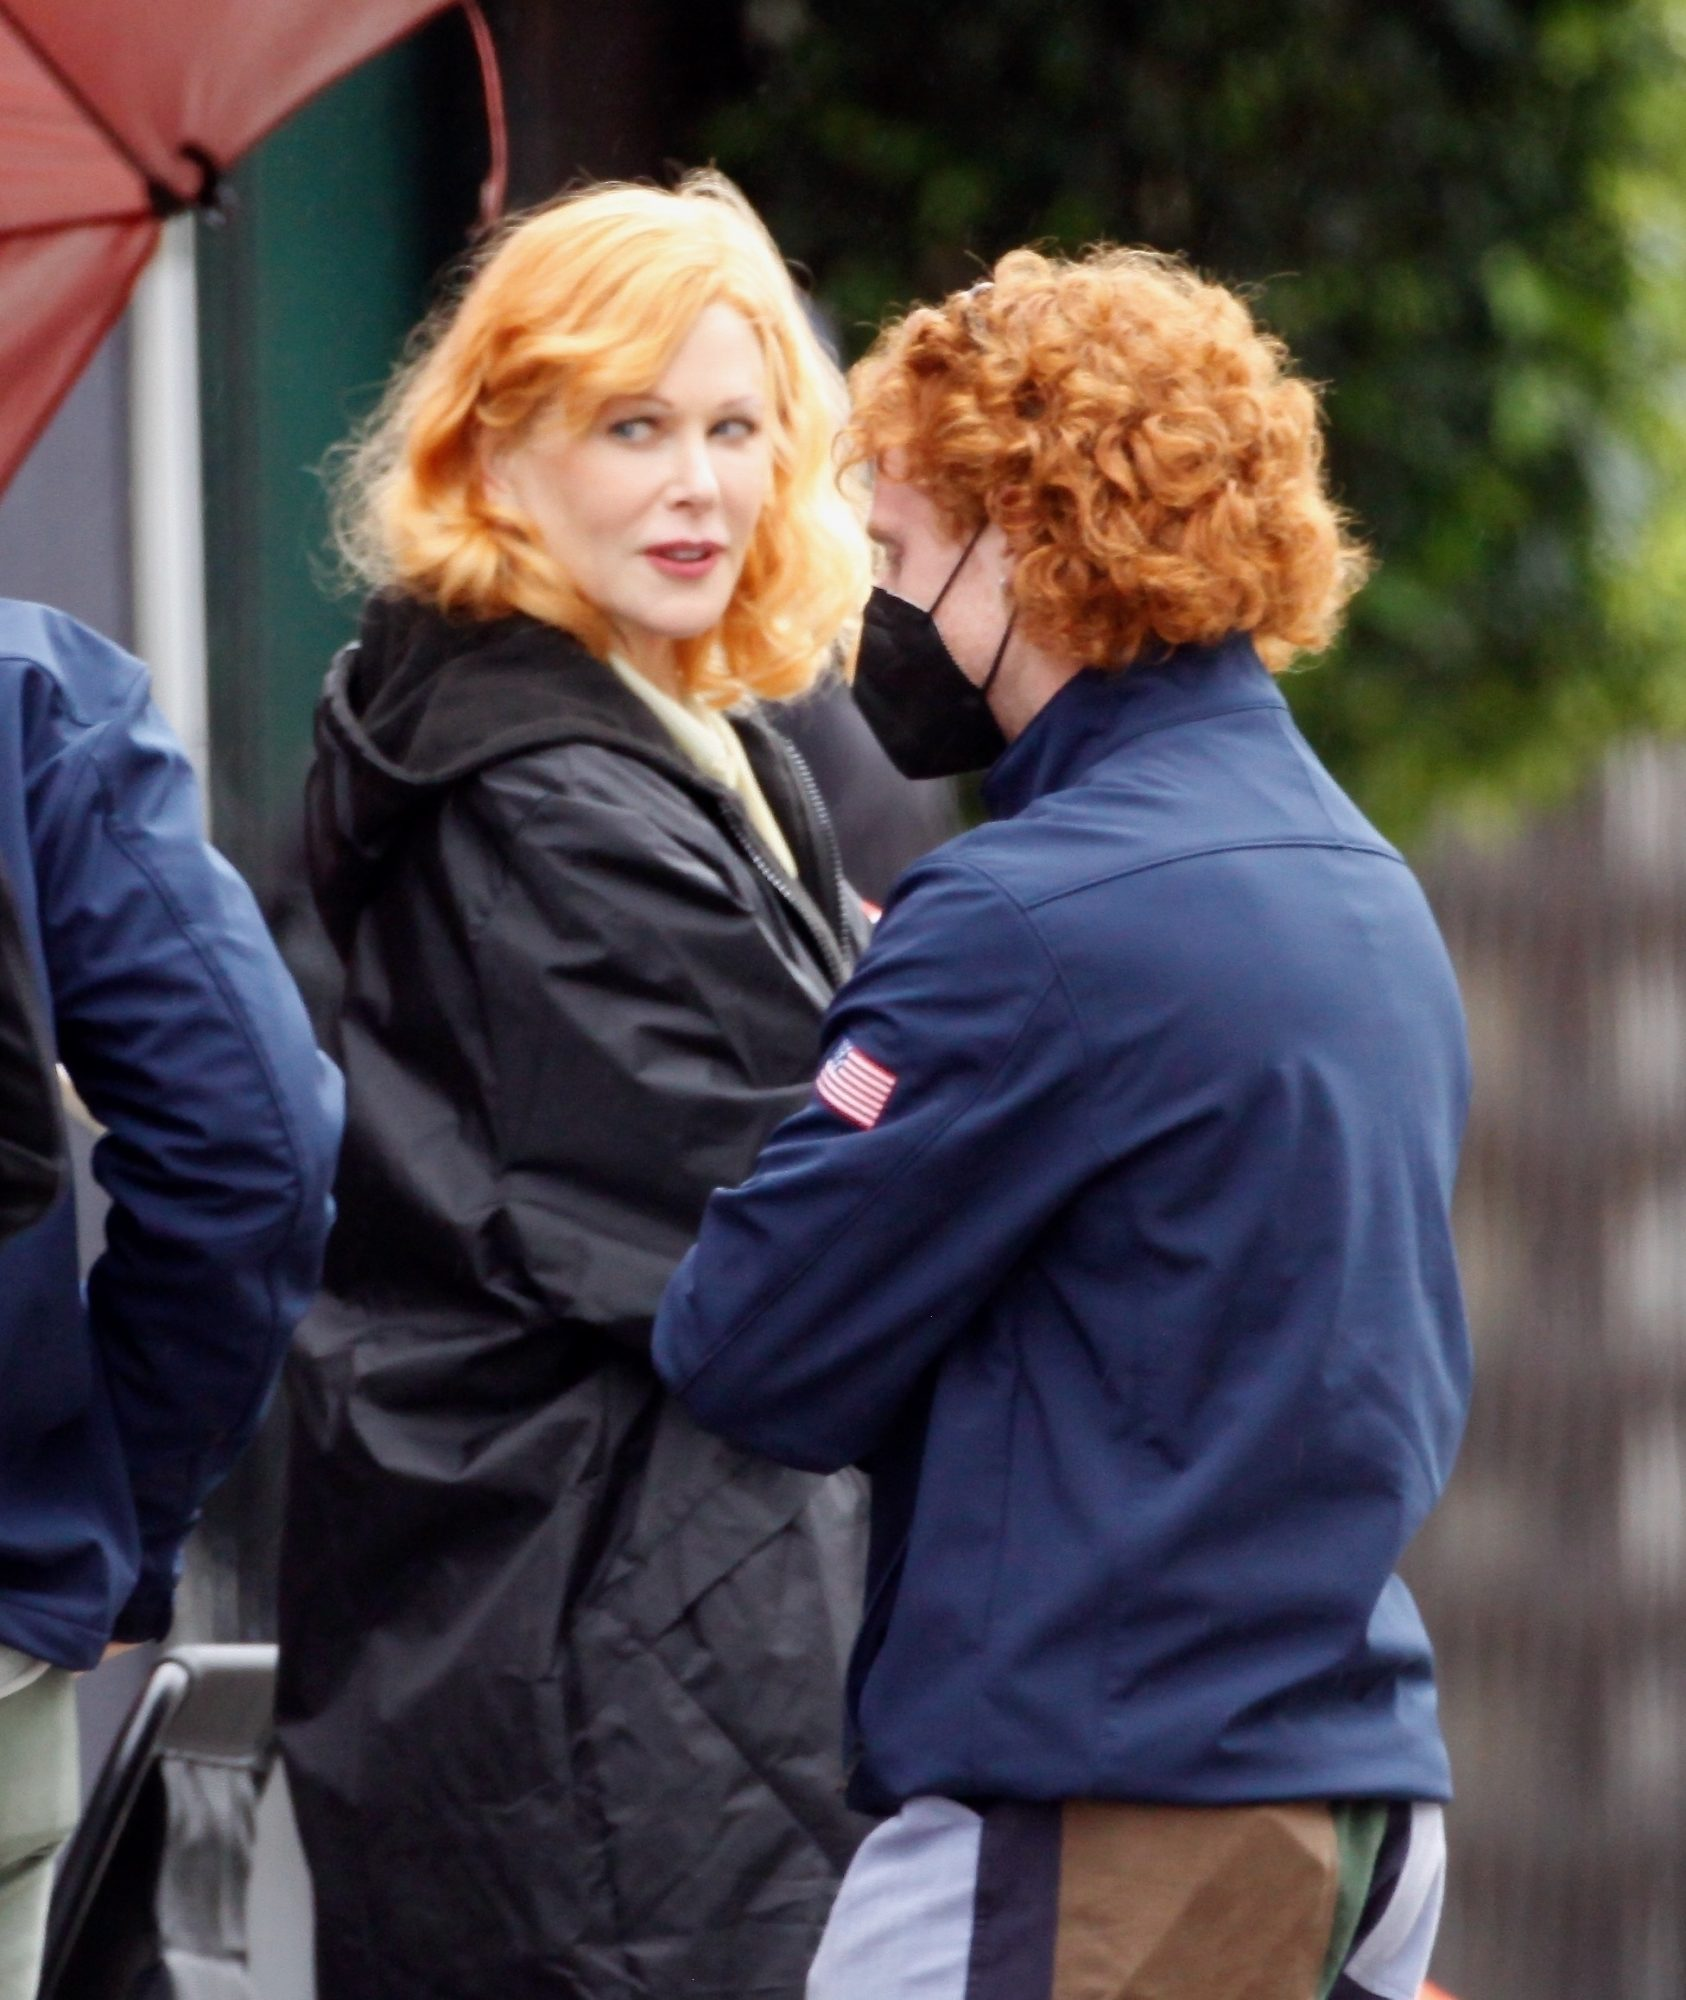 Nicole Kidman Transforms into Lucille Ball on the Set of 'Being The Ricardos'